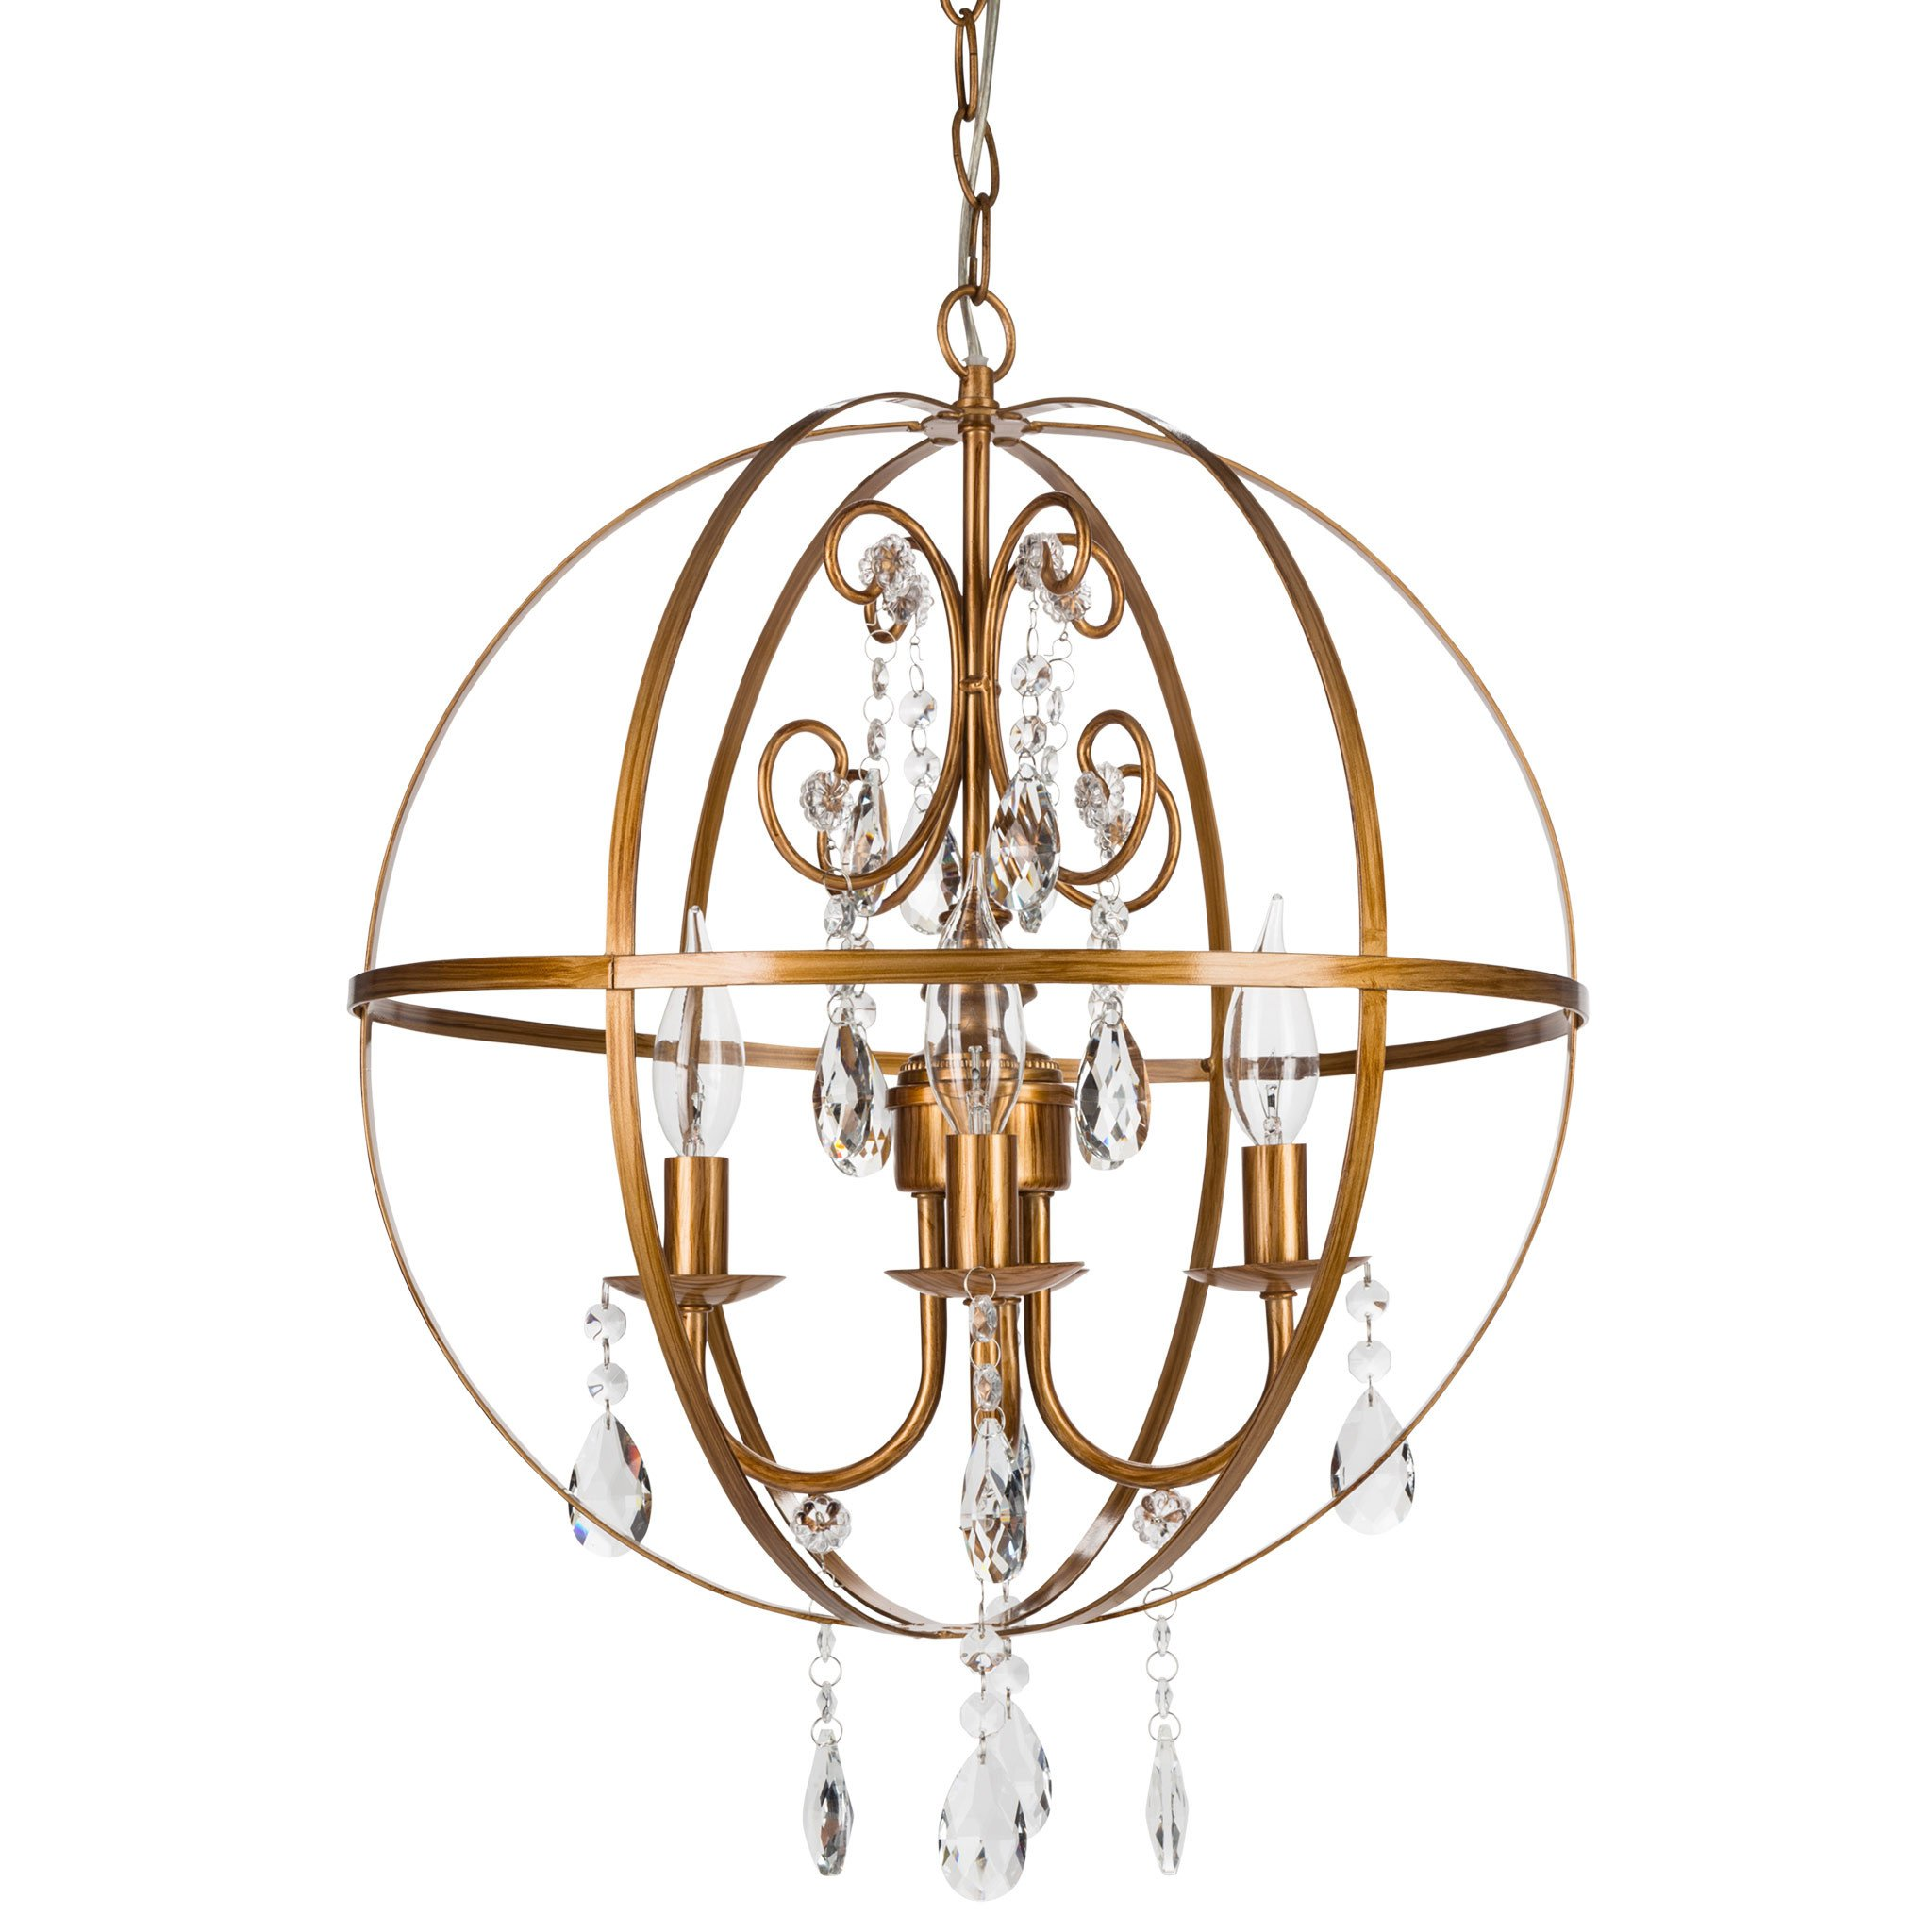 Amalfi Decor 4 Light Contemporary Crystal Orb Plug-In Chandelier (Gold) | H | Wrought Iron Frame with Glass Crystals